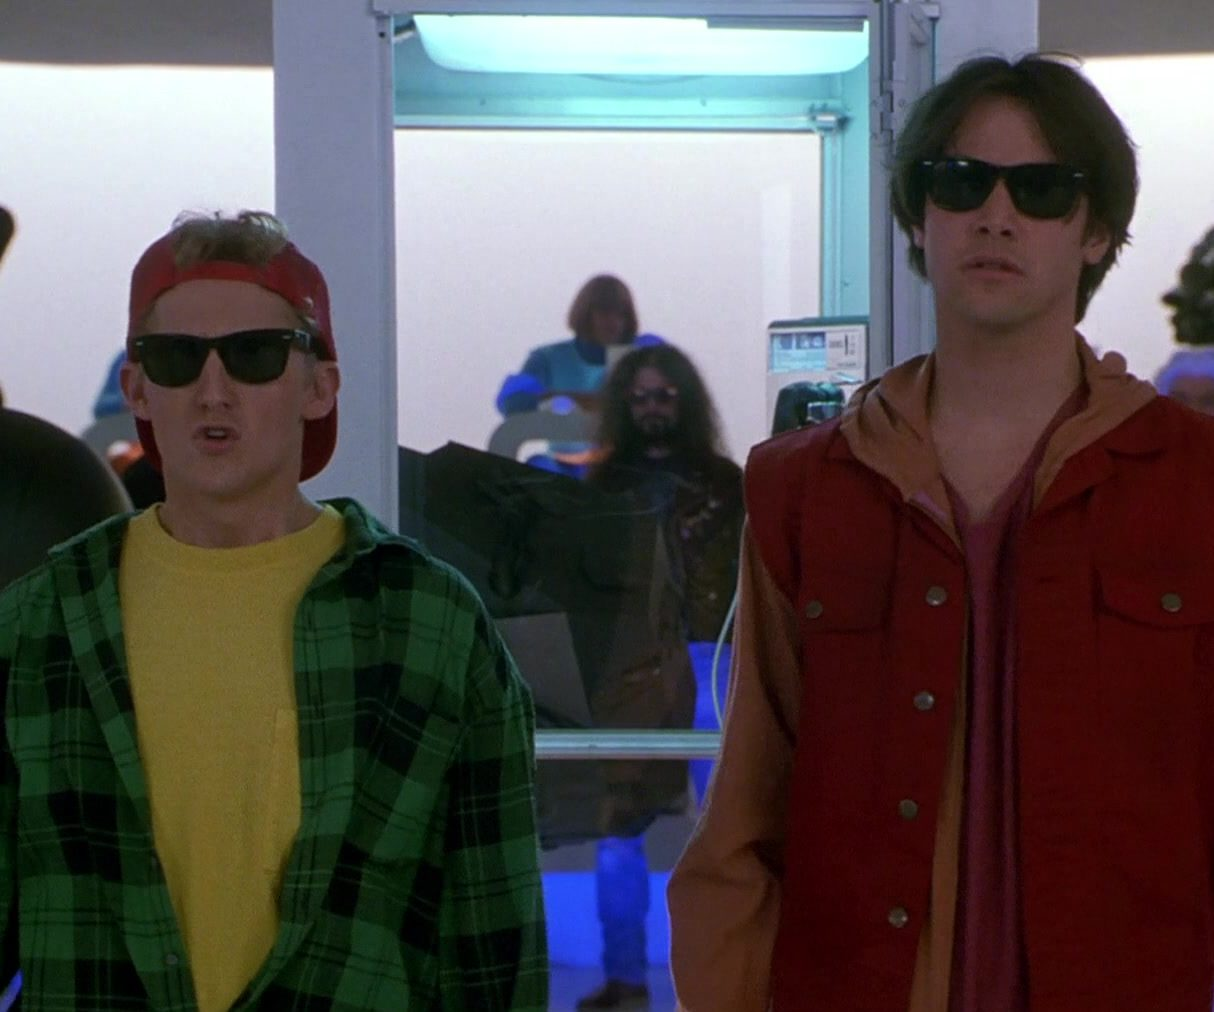 Ray Ban Wayfarer Sunglasses Worn by Keanu Reeves Alex Winter in Bill Teds Bogus Journey 2 e1616683691554 30 Most Triumphant Truths About Bill & Ted's Bogus Journey